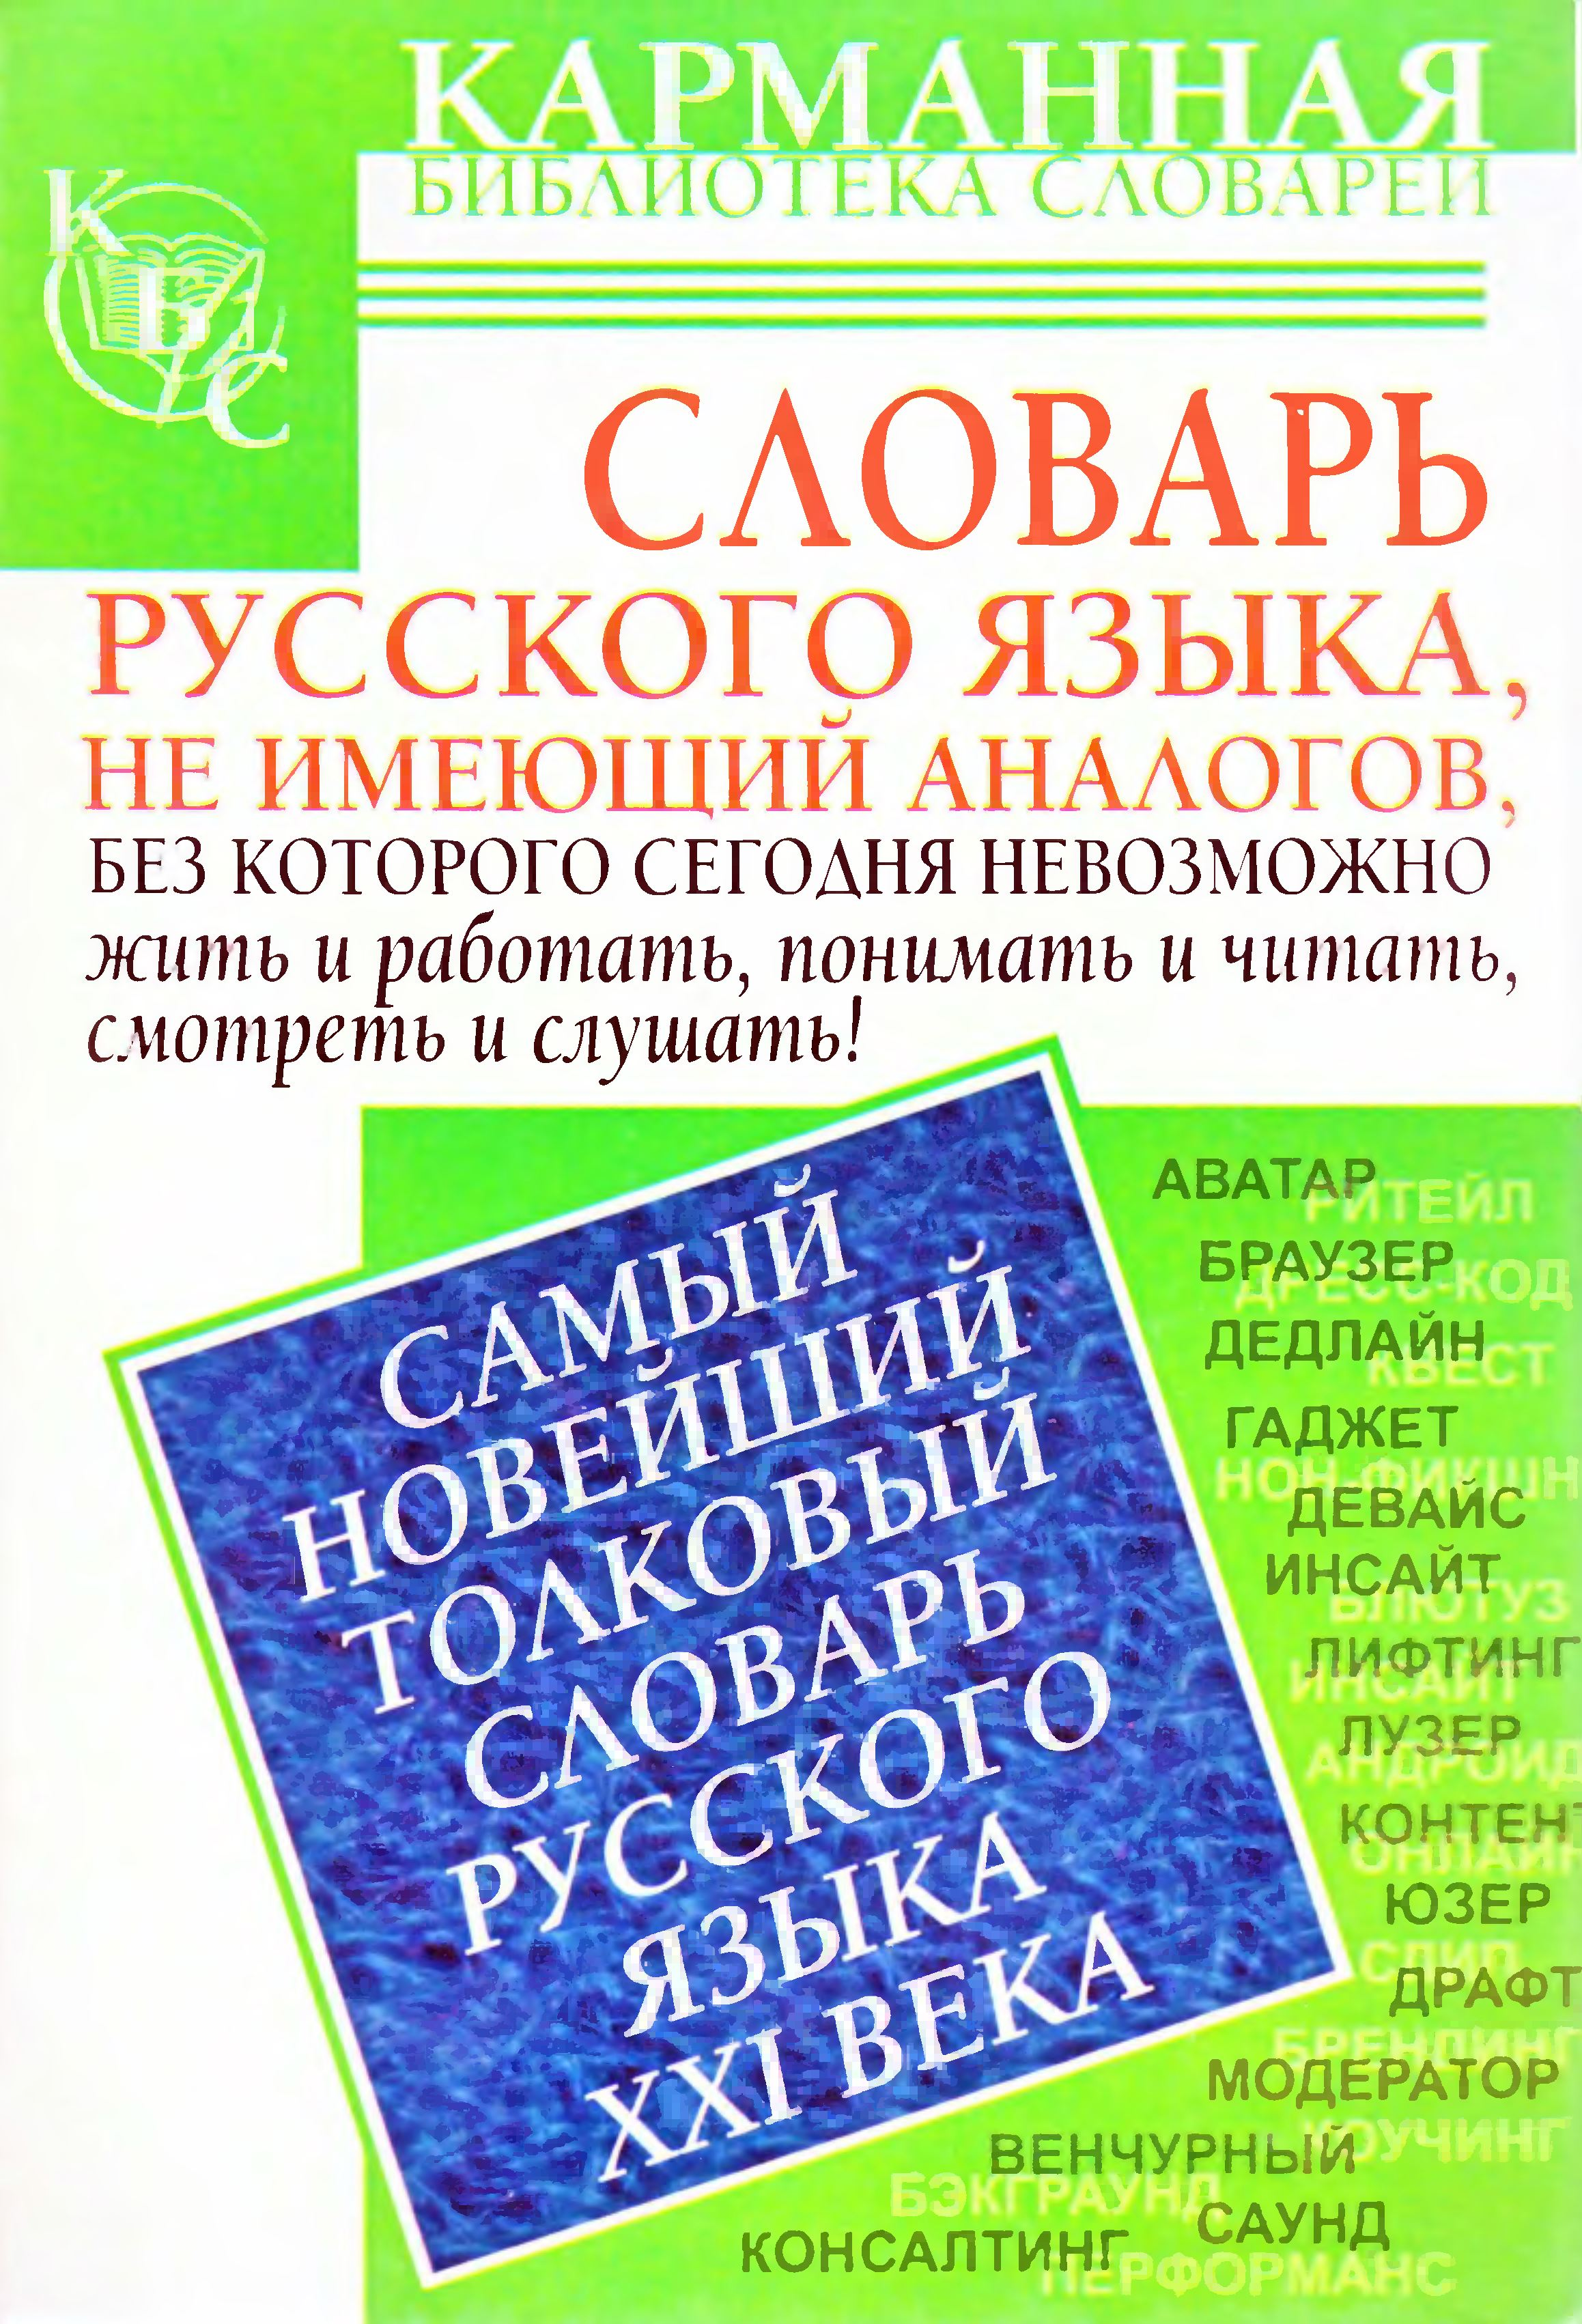 NEWEST MOST OF RUSSIAN LANGUAGE DICTIONARY OF THE XXI C